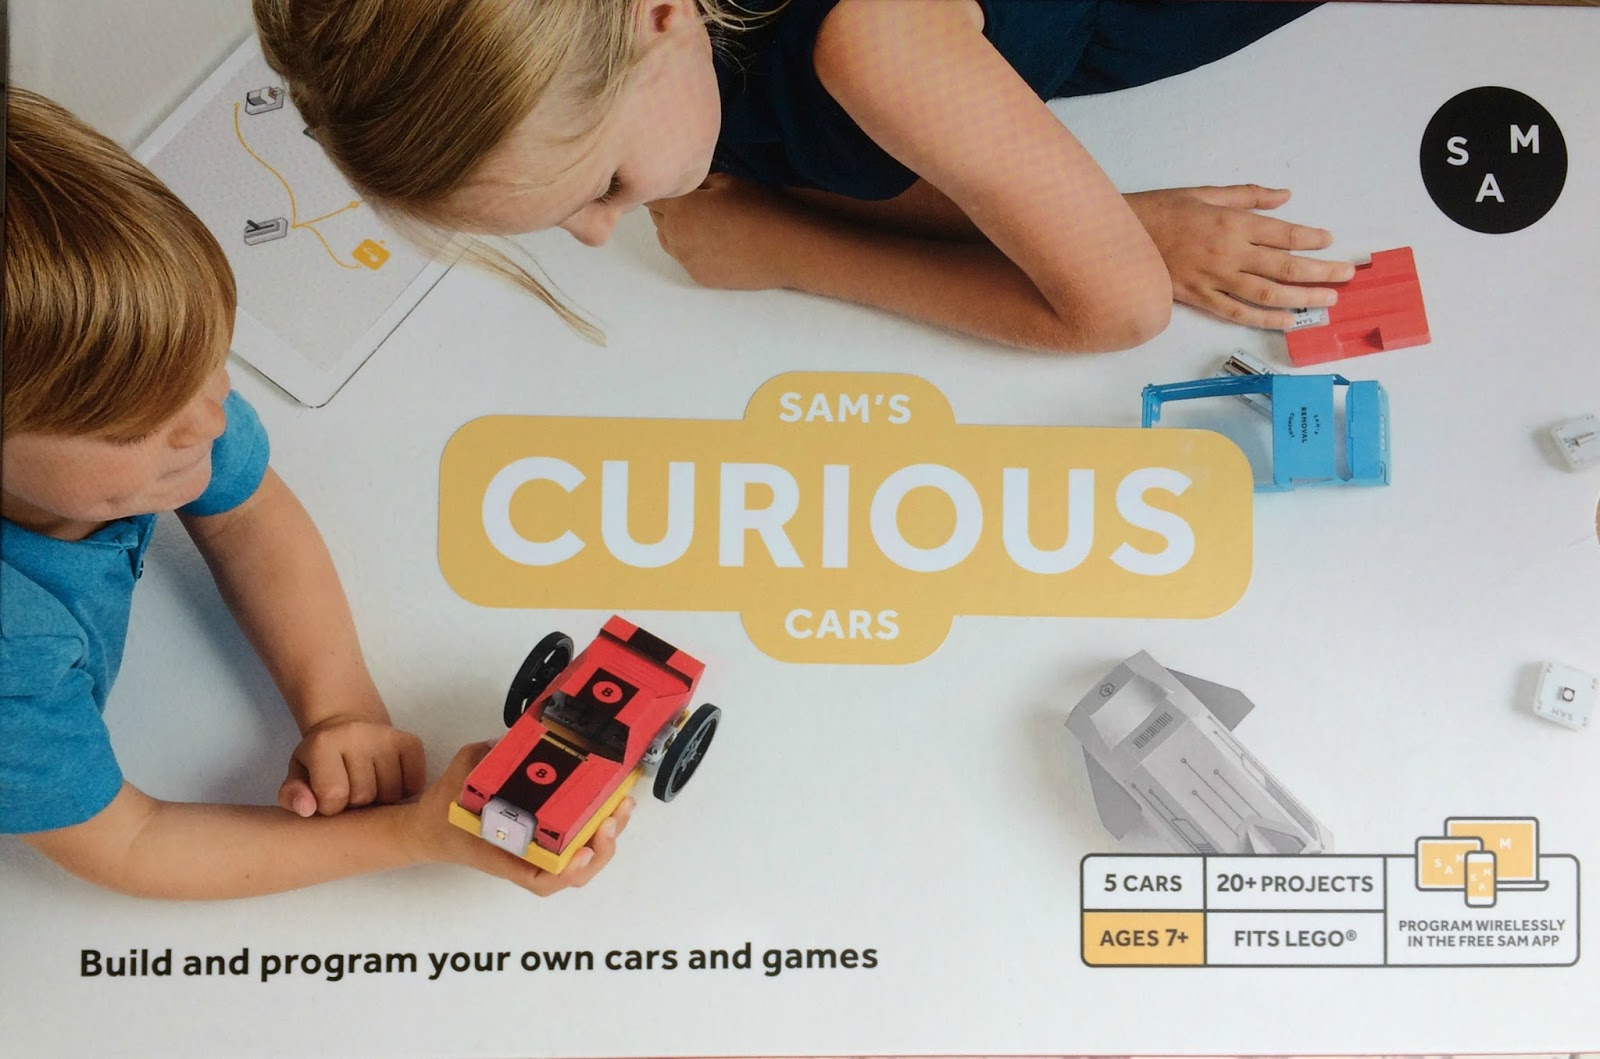 Sam's Curious Cars kit box front